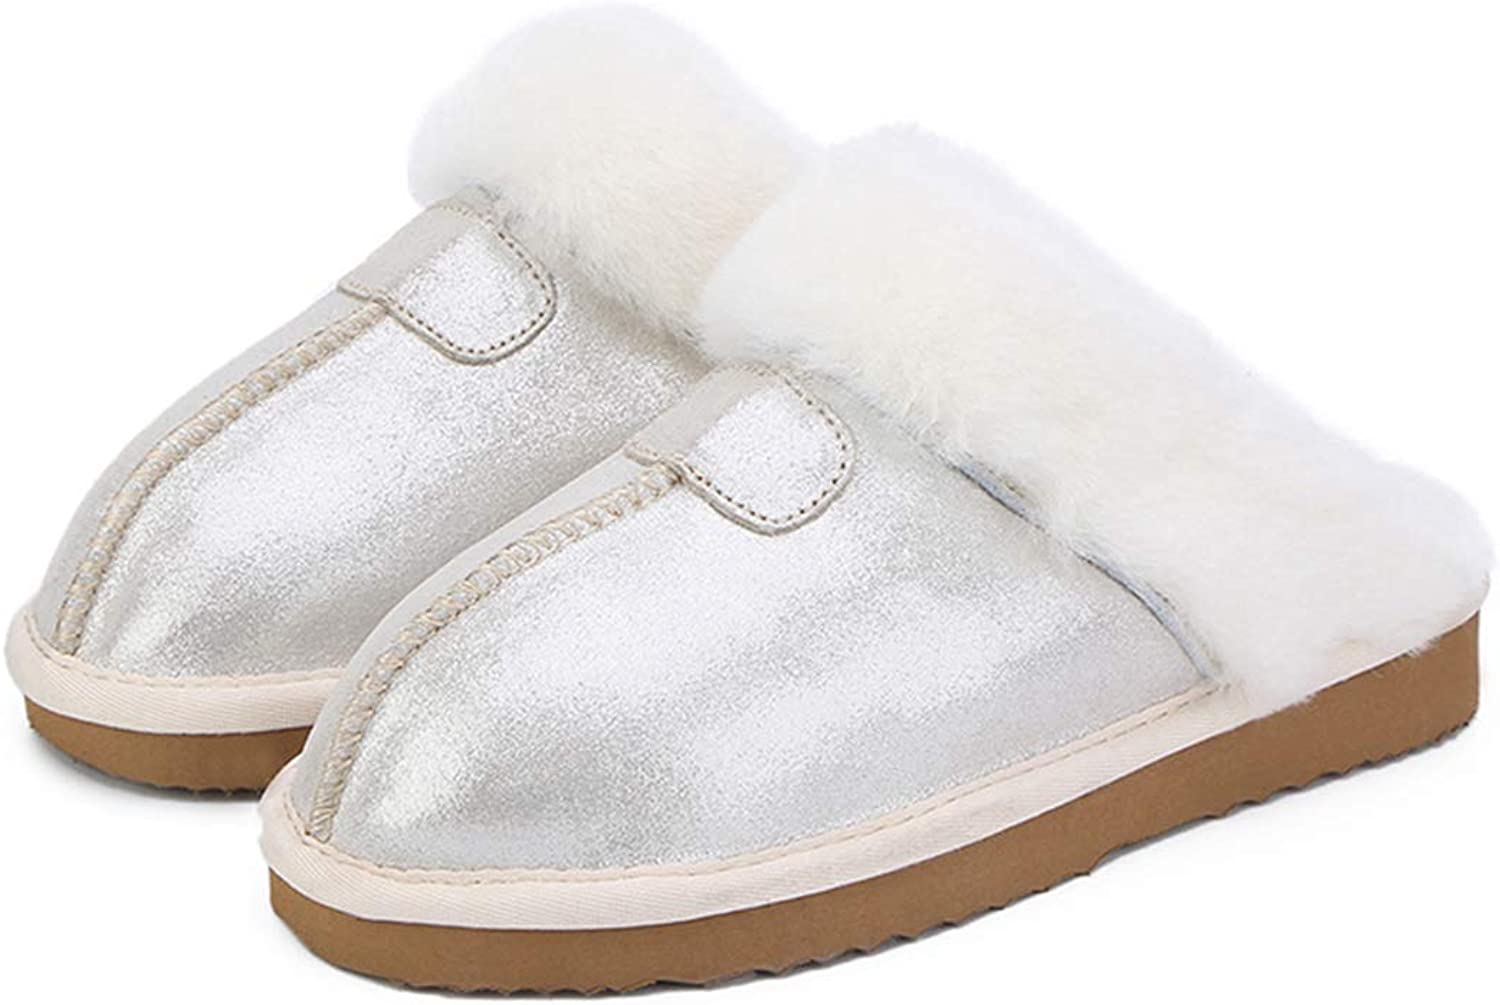 NOMIMAS Fashion Warm Women shoes Natural Fur Slippers Home shoes Winter Suede Slippers Woman Indoor shoes Wool Slippers